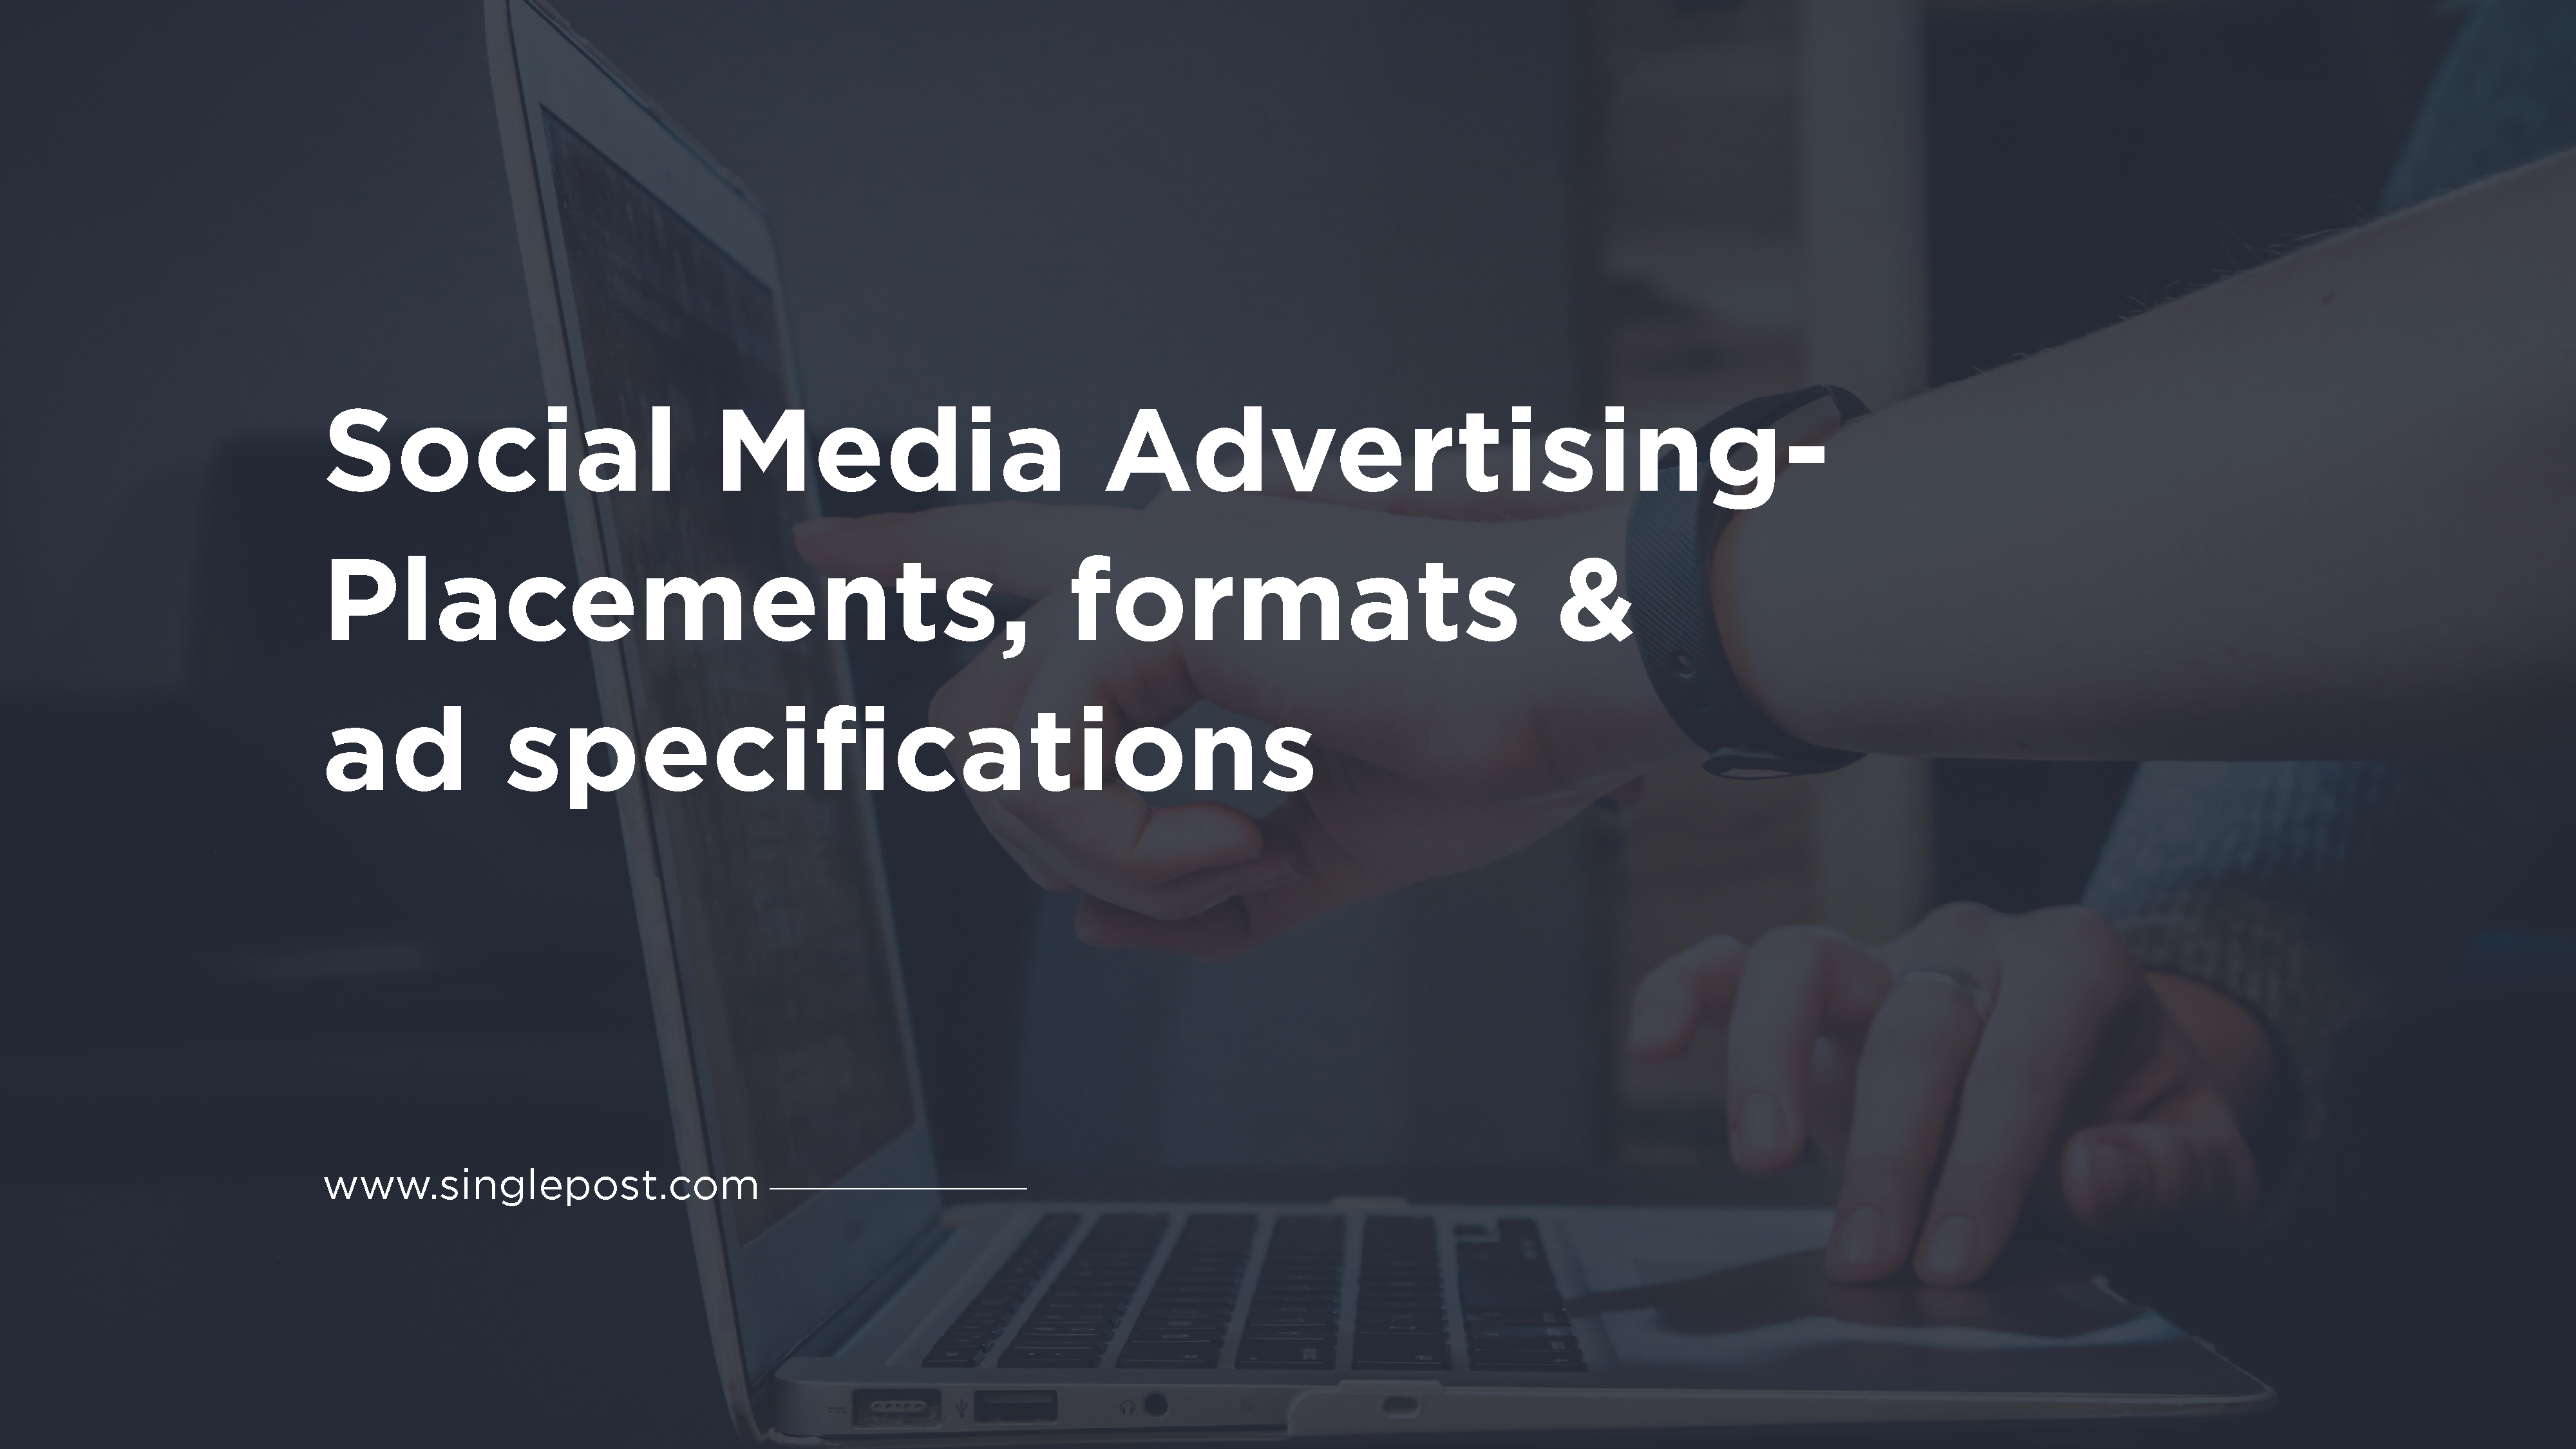 Ad placement, formats & Specs on Social Media- the complete